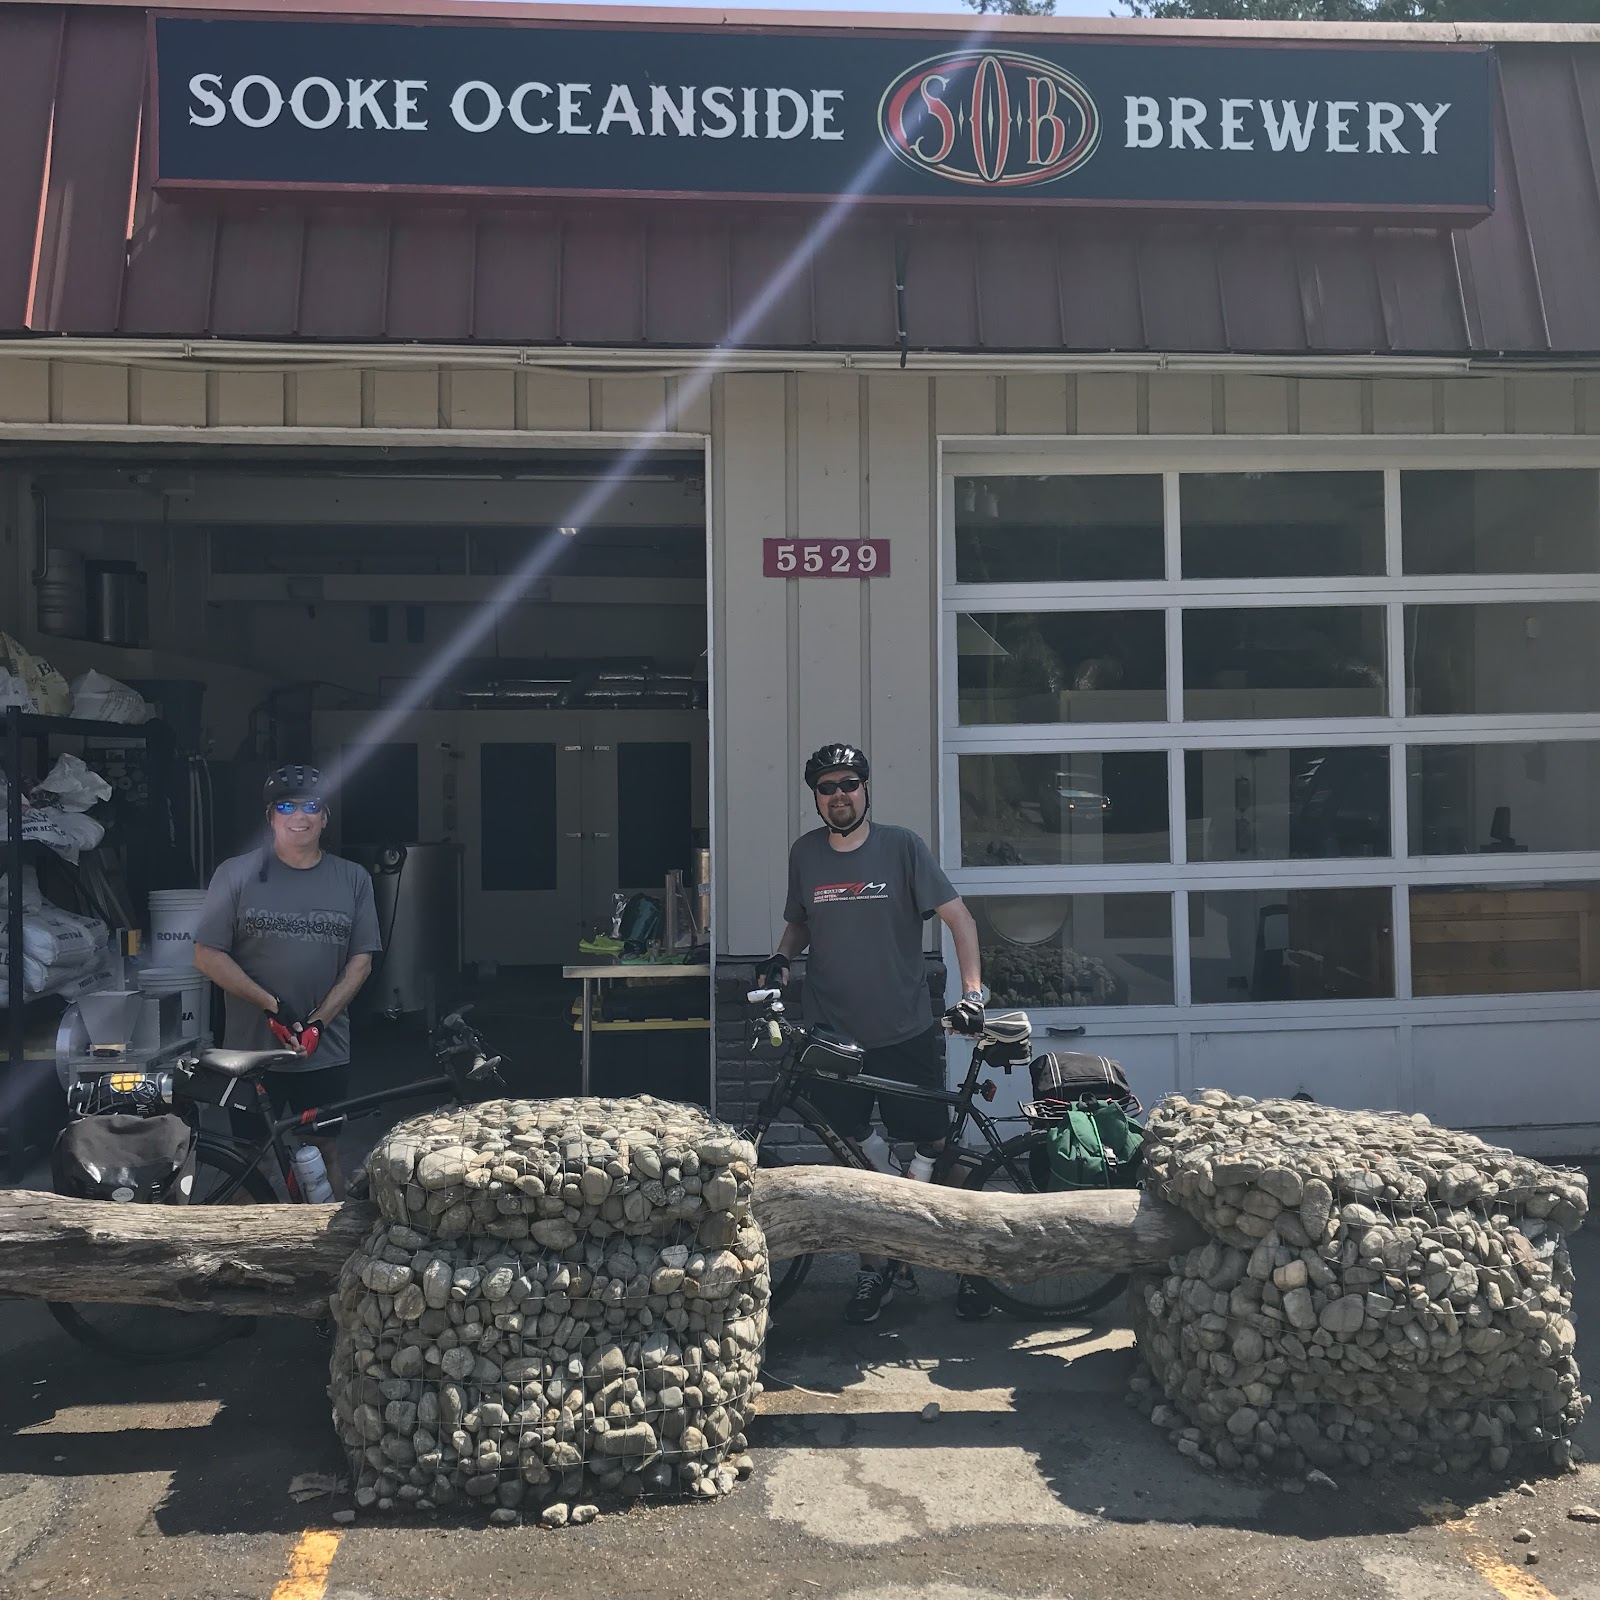 Glen and Chris at Sooke Oceanside Brewery